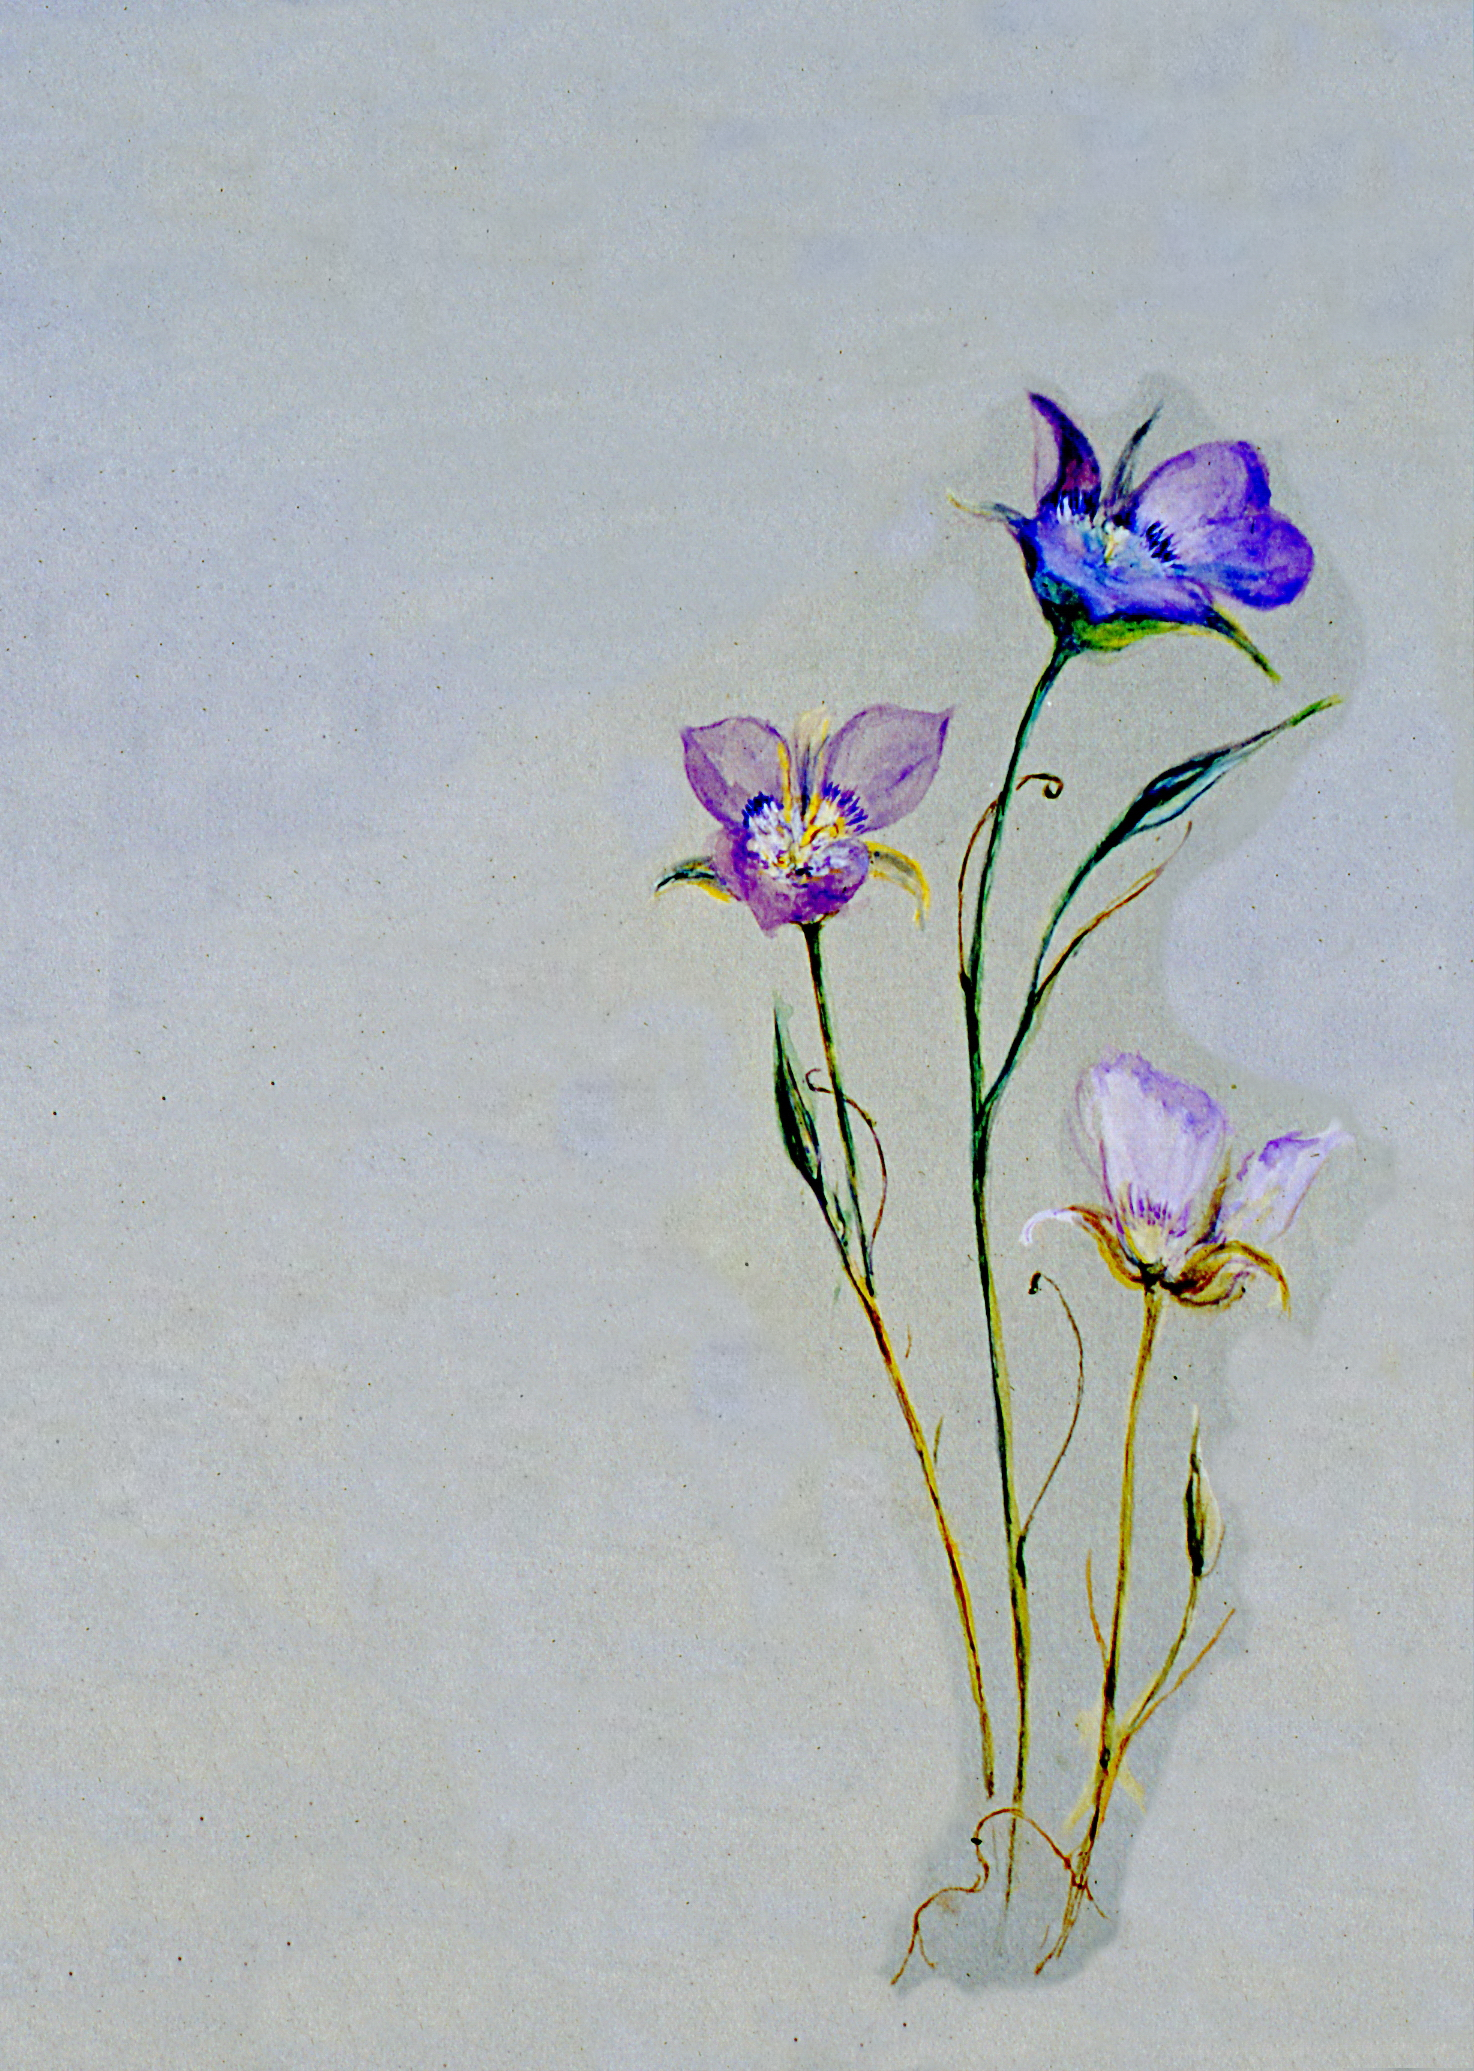 Untitled (Botanical - 3 Purple Flowers), n.d., Julia Bullock Webster, watercolour on paper, 35.4 cm x 25.1 cm, 2003.02.26, gift of The Grist Mill at Keremeos